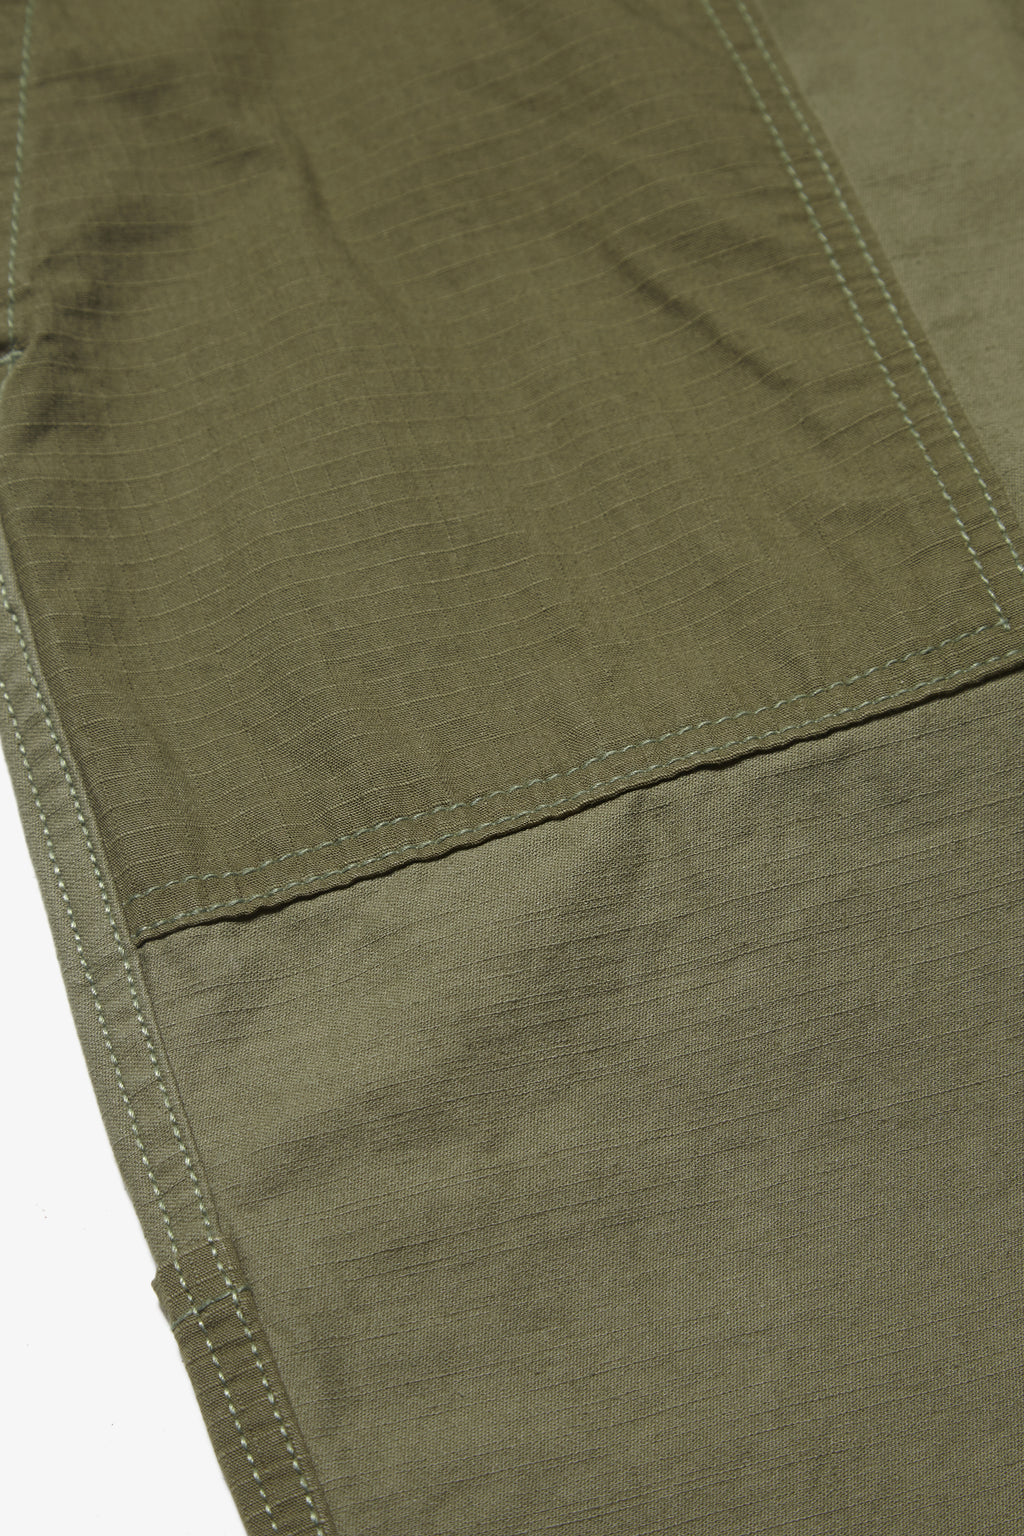 Outstanding & Co. - Fatigue Pocket Pants - Olive